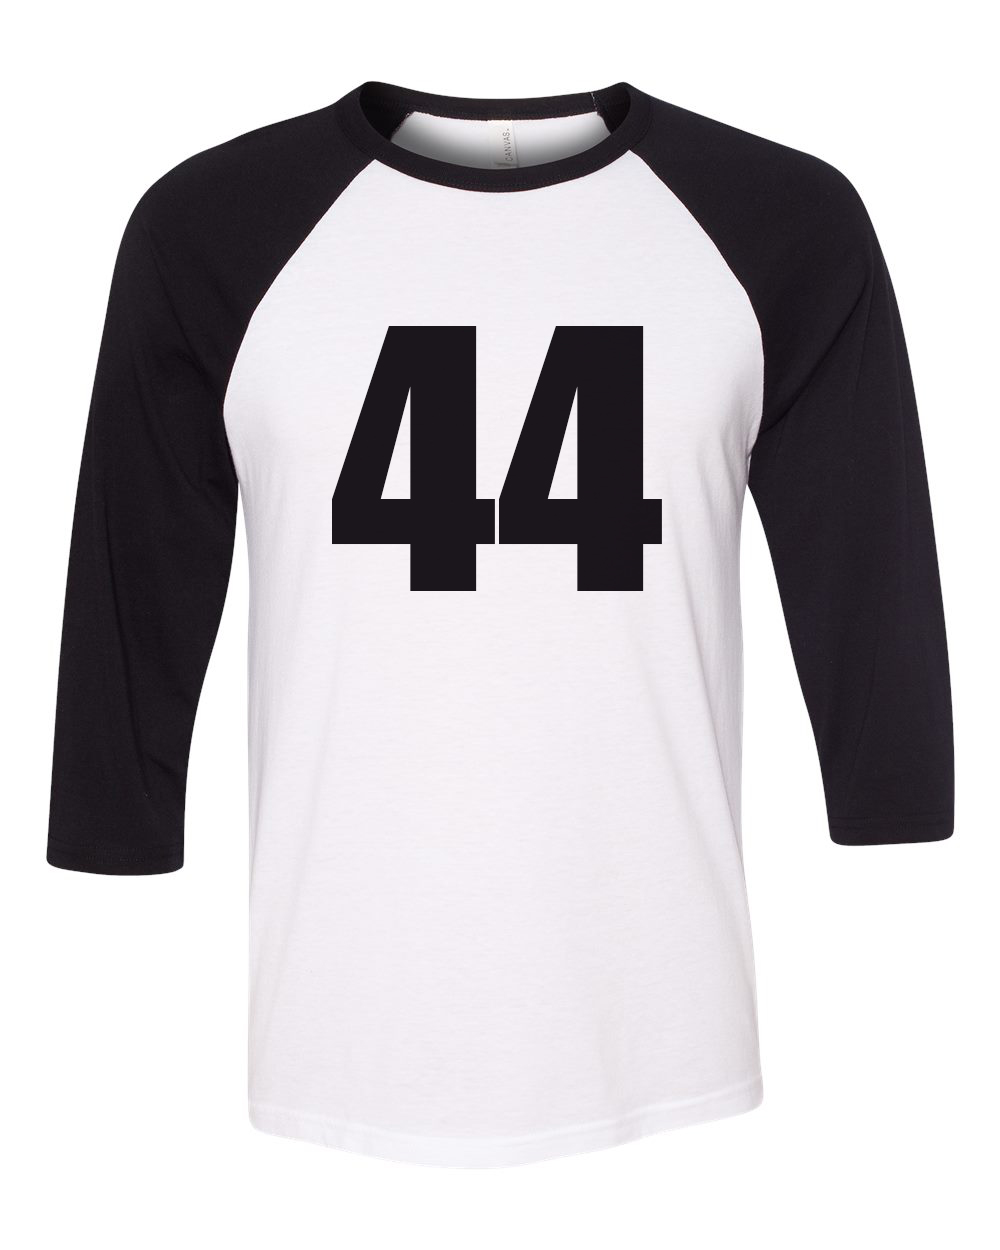 Mandy 44 Baseball Shirt